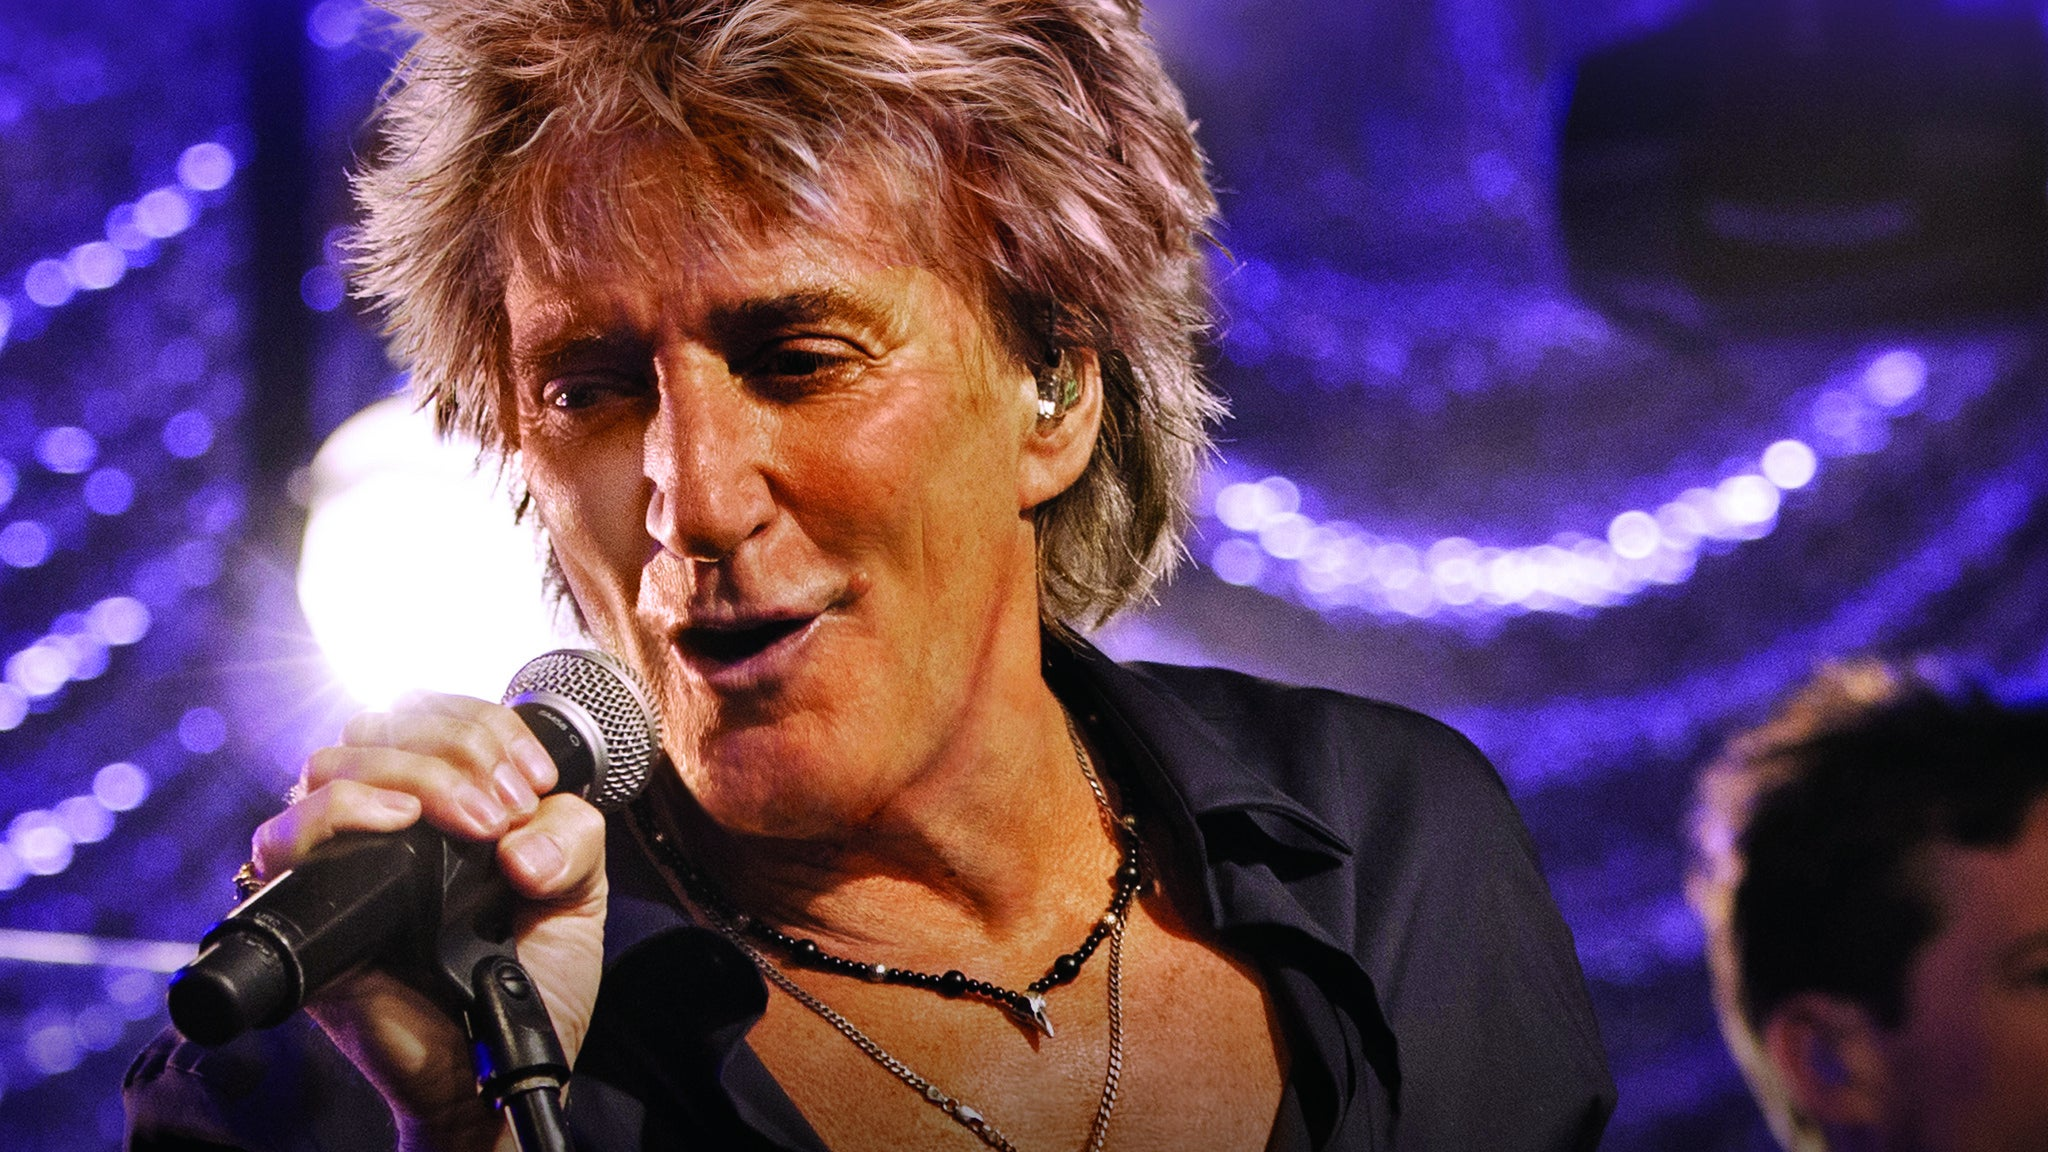 Rod Stewart W/ Special Guest Cyndi Lauper at KFC Yum! Center